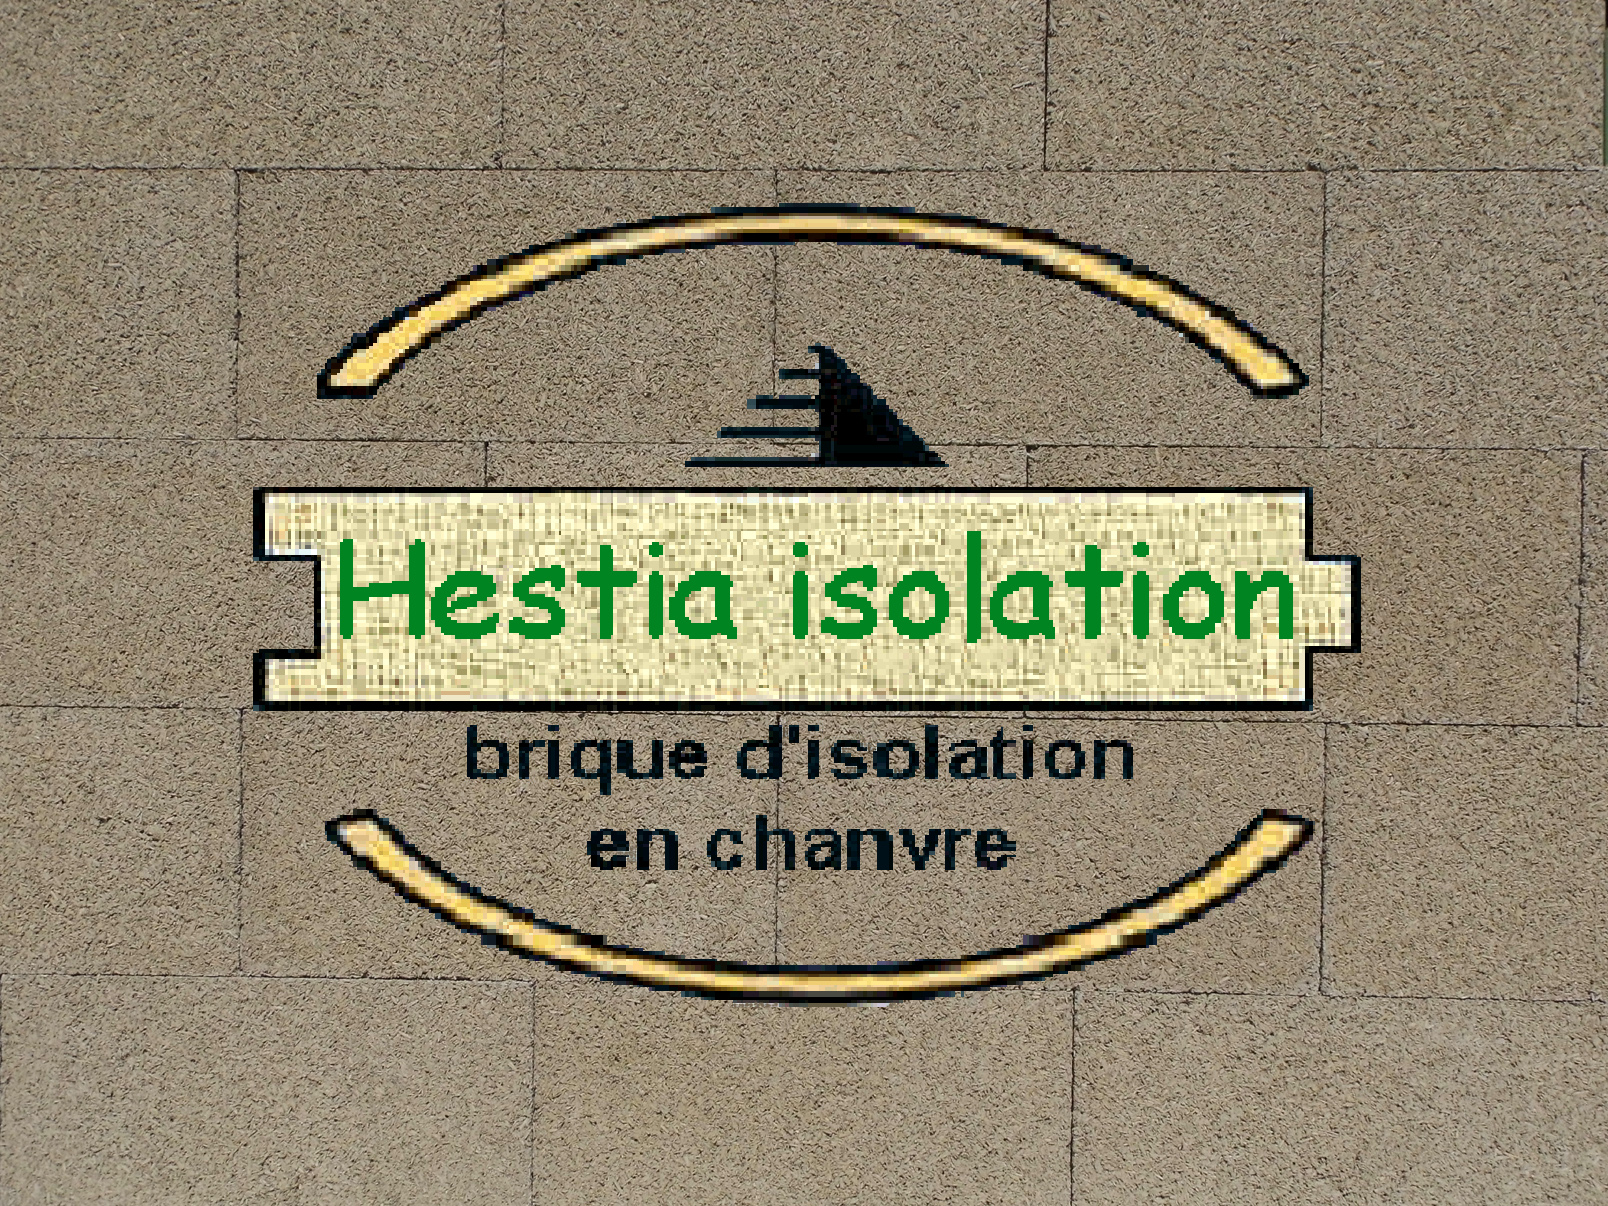 Hestia insulation hemp brick insulation acoustic & thermal quality for studio recording room music concert repetition absorption sound